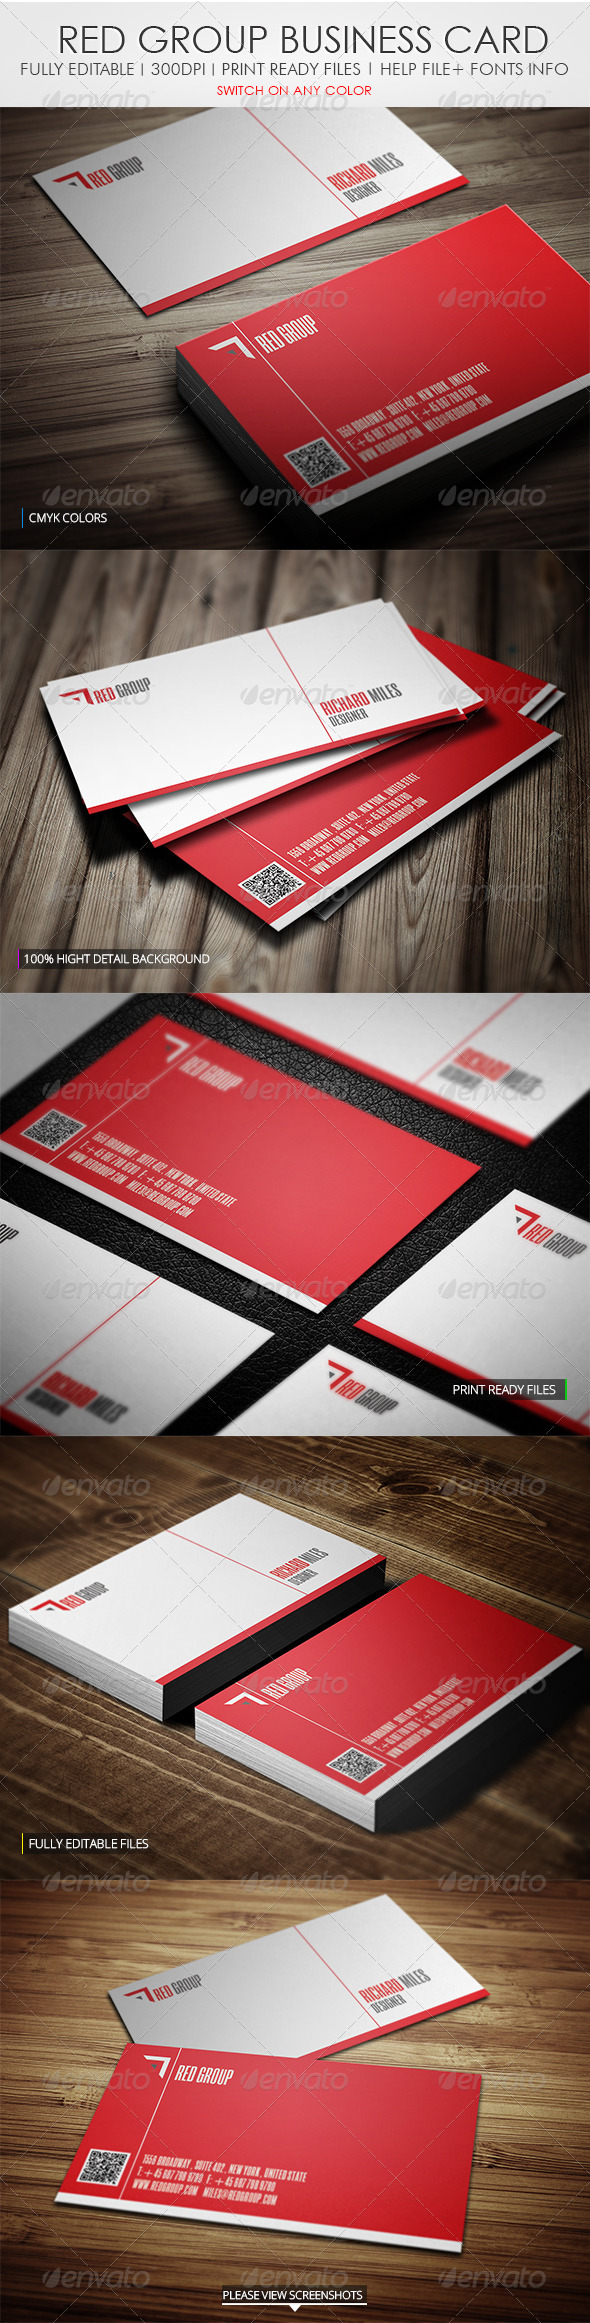 GraphicRiver Red Group Business Card 4491356